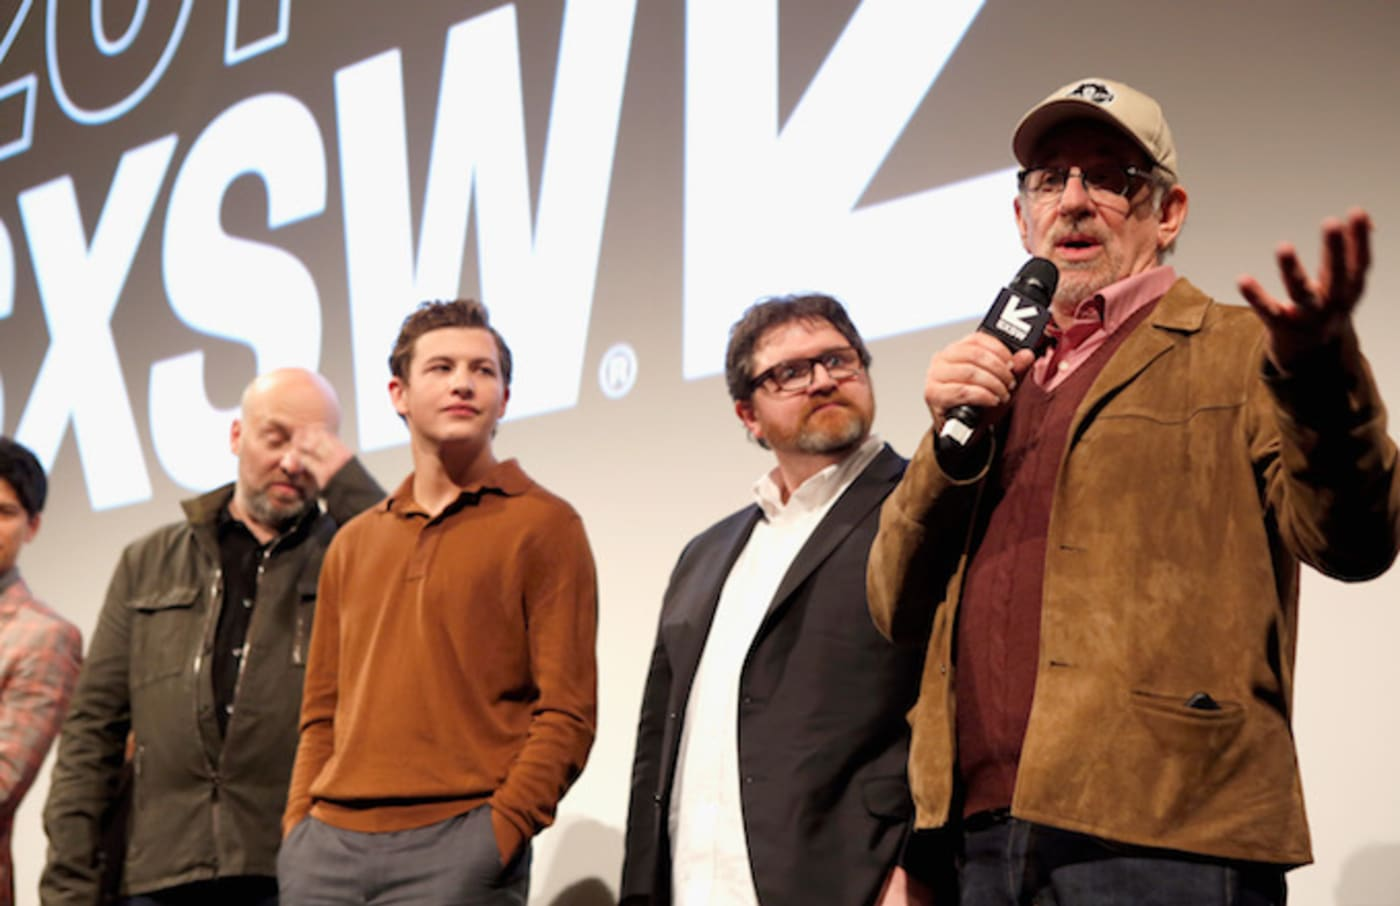 Zak Penn, Tye Sheridan, Ernest Cline, and Steven Spielberg at the premiere of 'Ready Player One.'